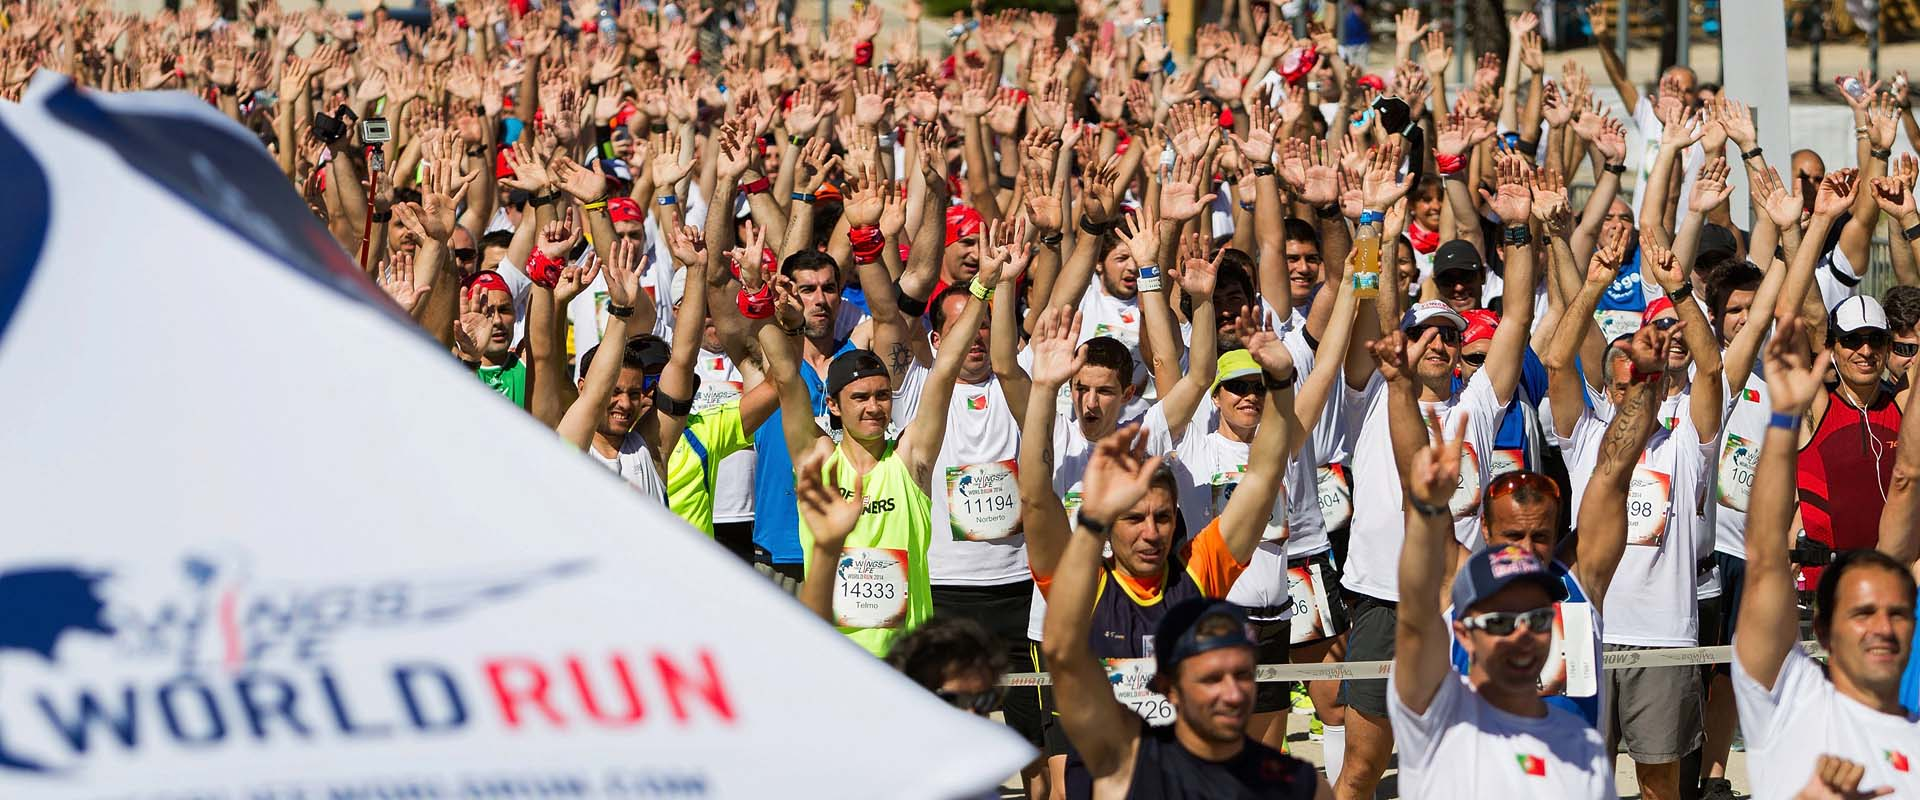 Participants warm up before the race at the Wings For Life World Run in Comporta, Portugal, on May 4, 2014 // Goncalo Barriga for Wings for Life World Run // P-20140506-00200 // Usage for editorial use only // Please go to www.redbullcontentpool.com for further information. //